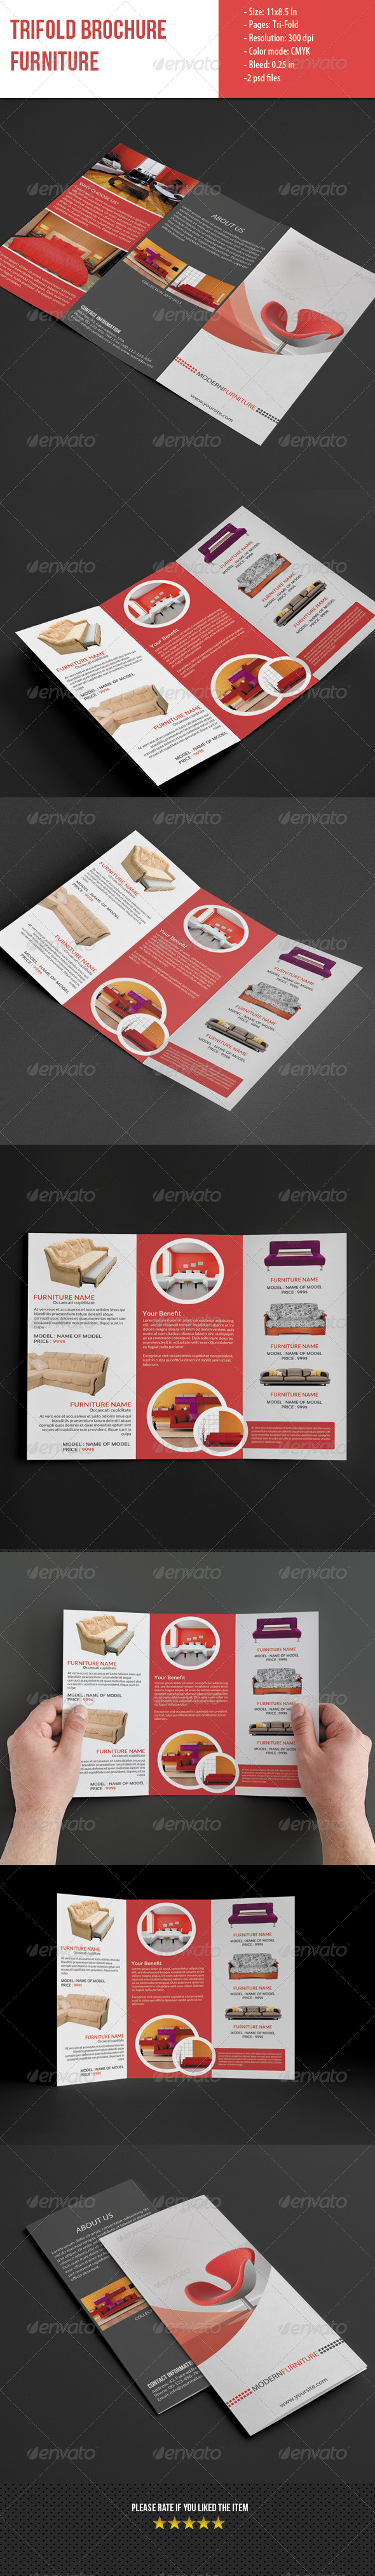 GraphicRiver Trifold Brochure for Furniture 5589824